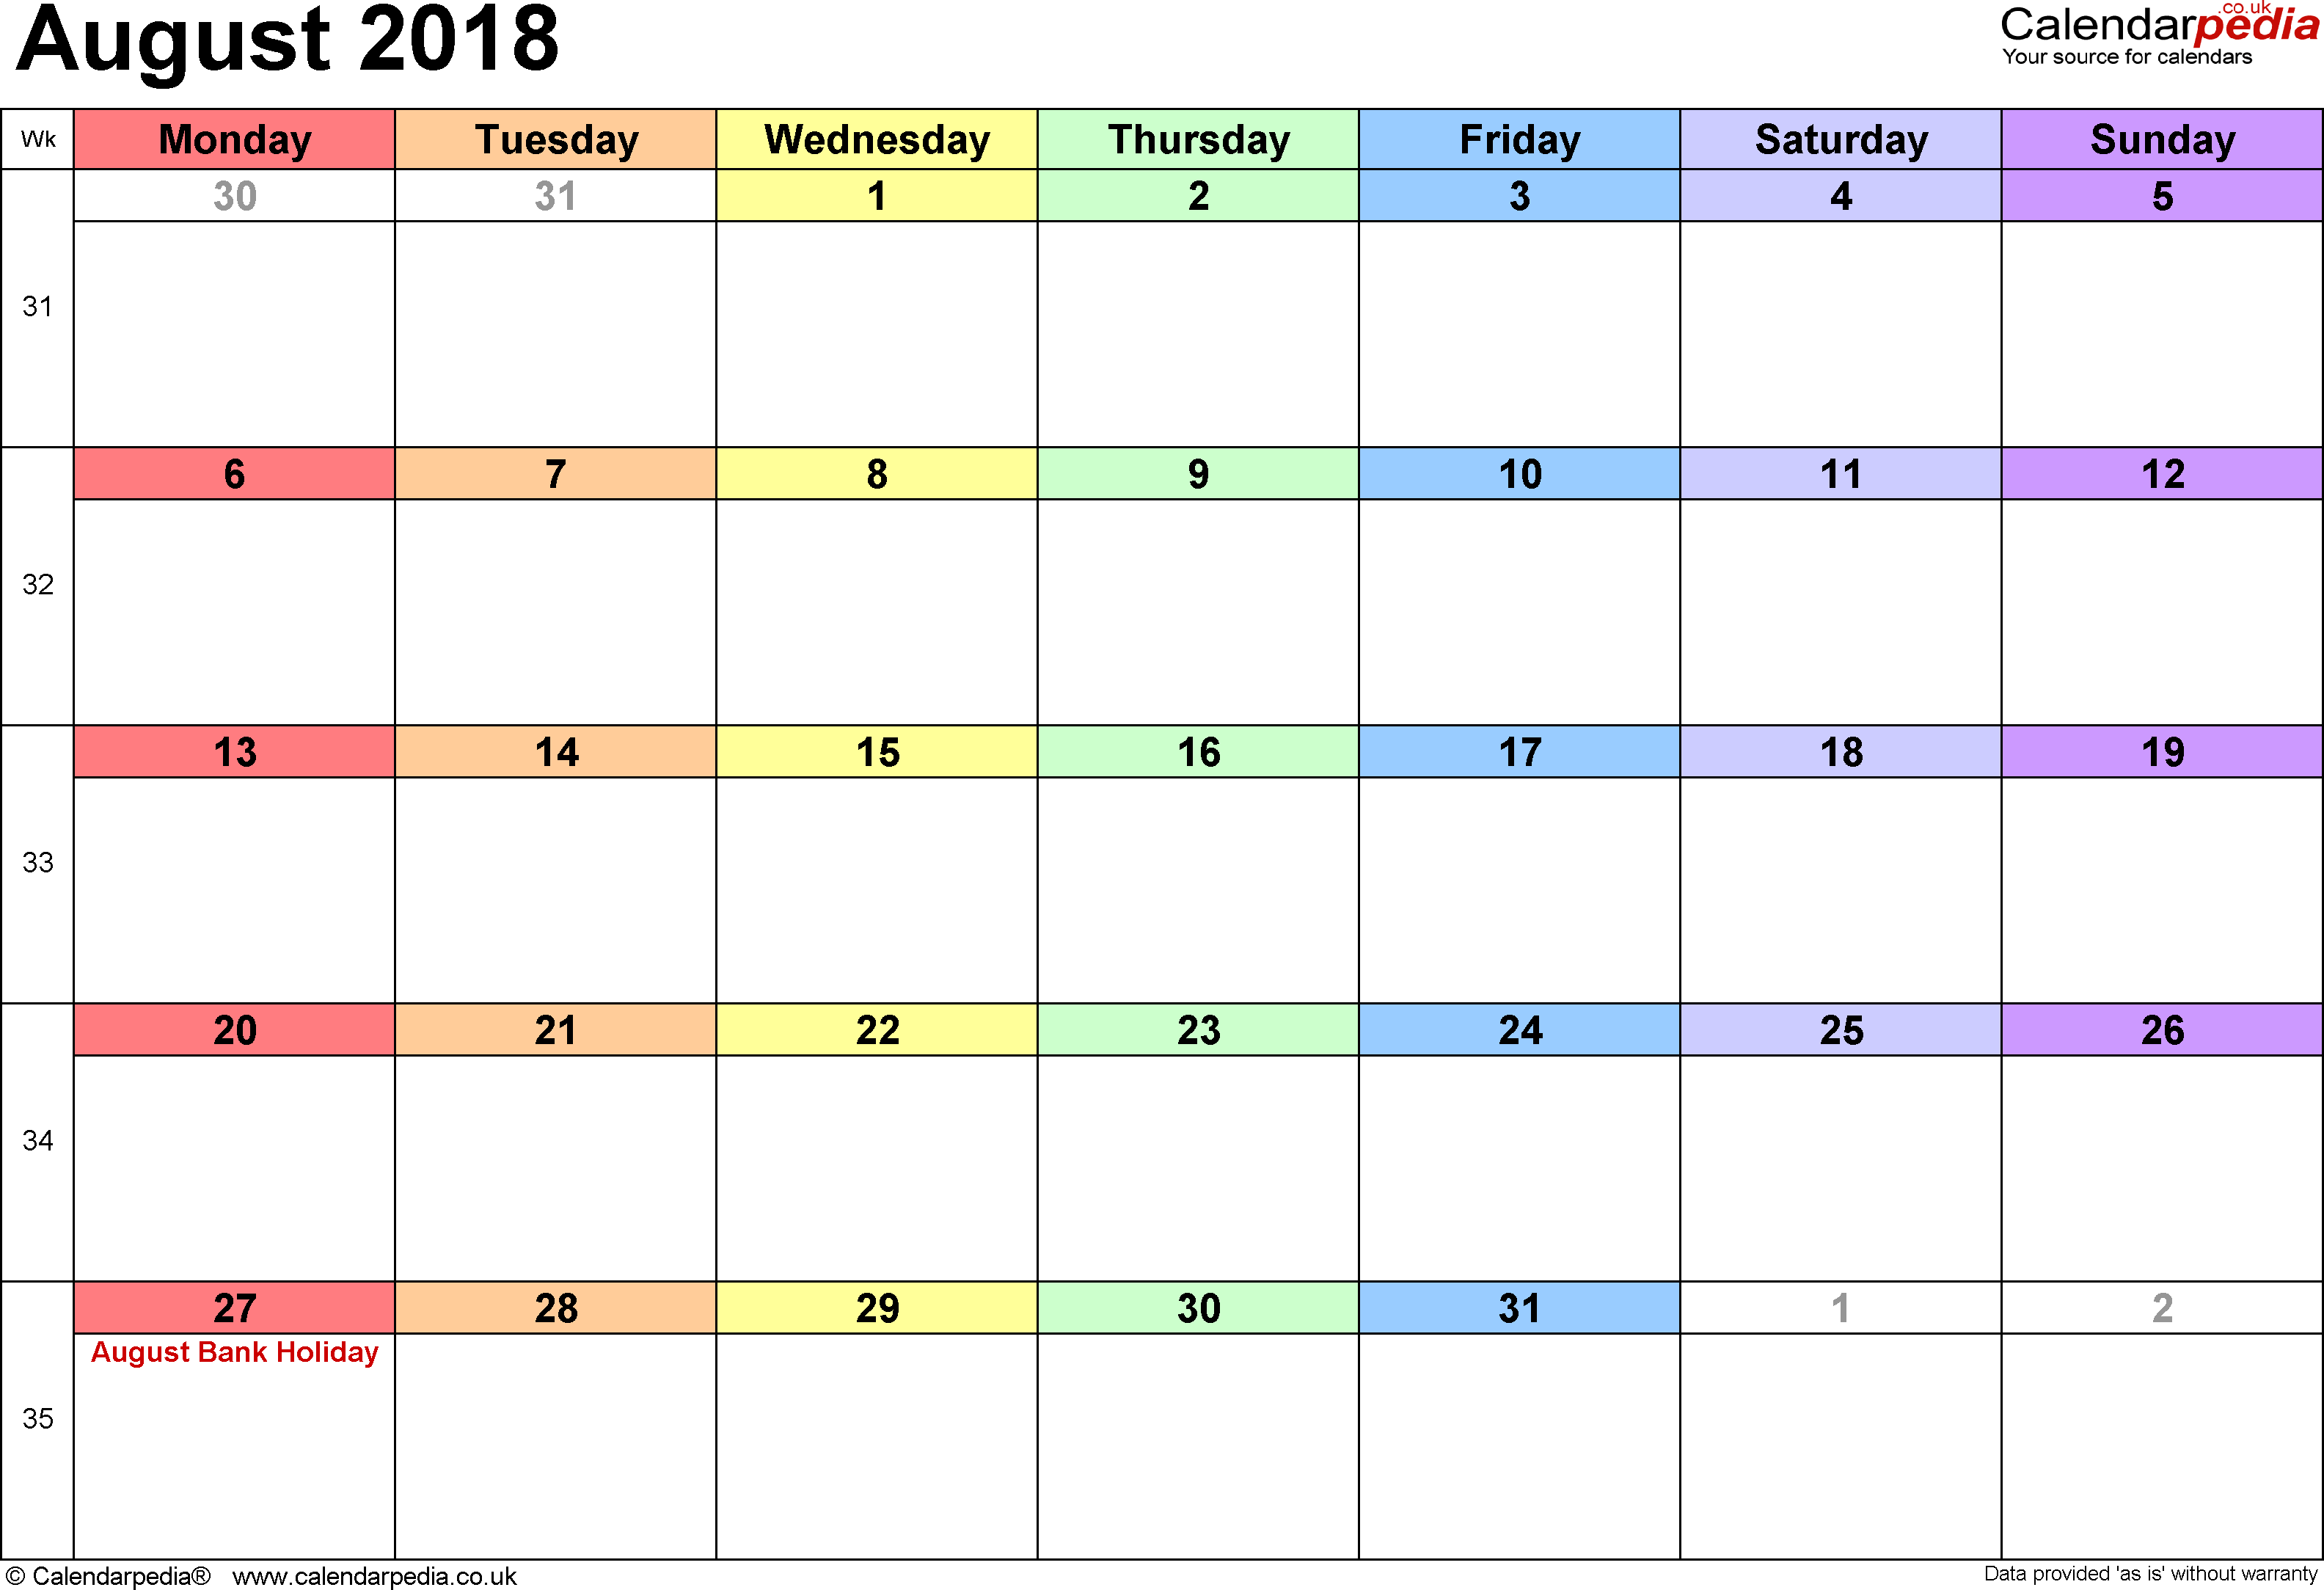 Calendar August 2018, landscape orientation, 1 page, with UK bank holidays and week numbers